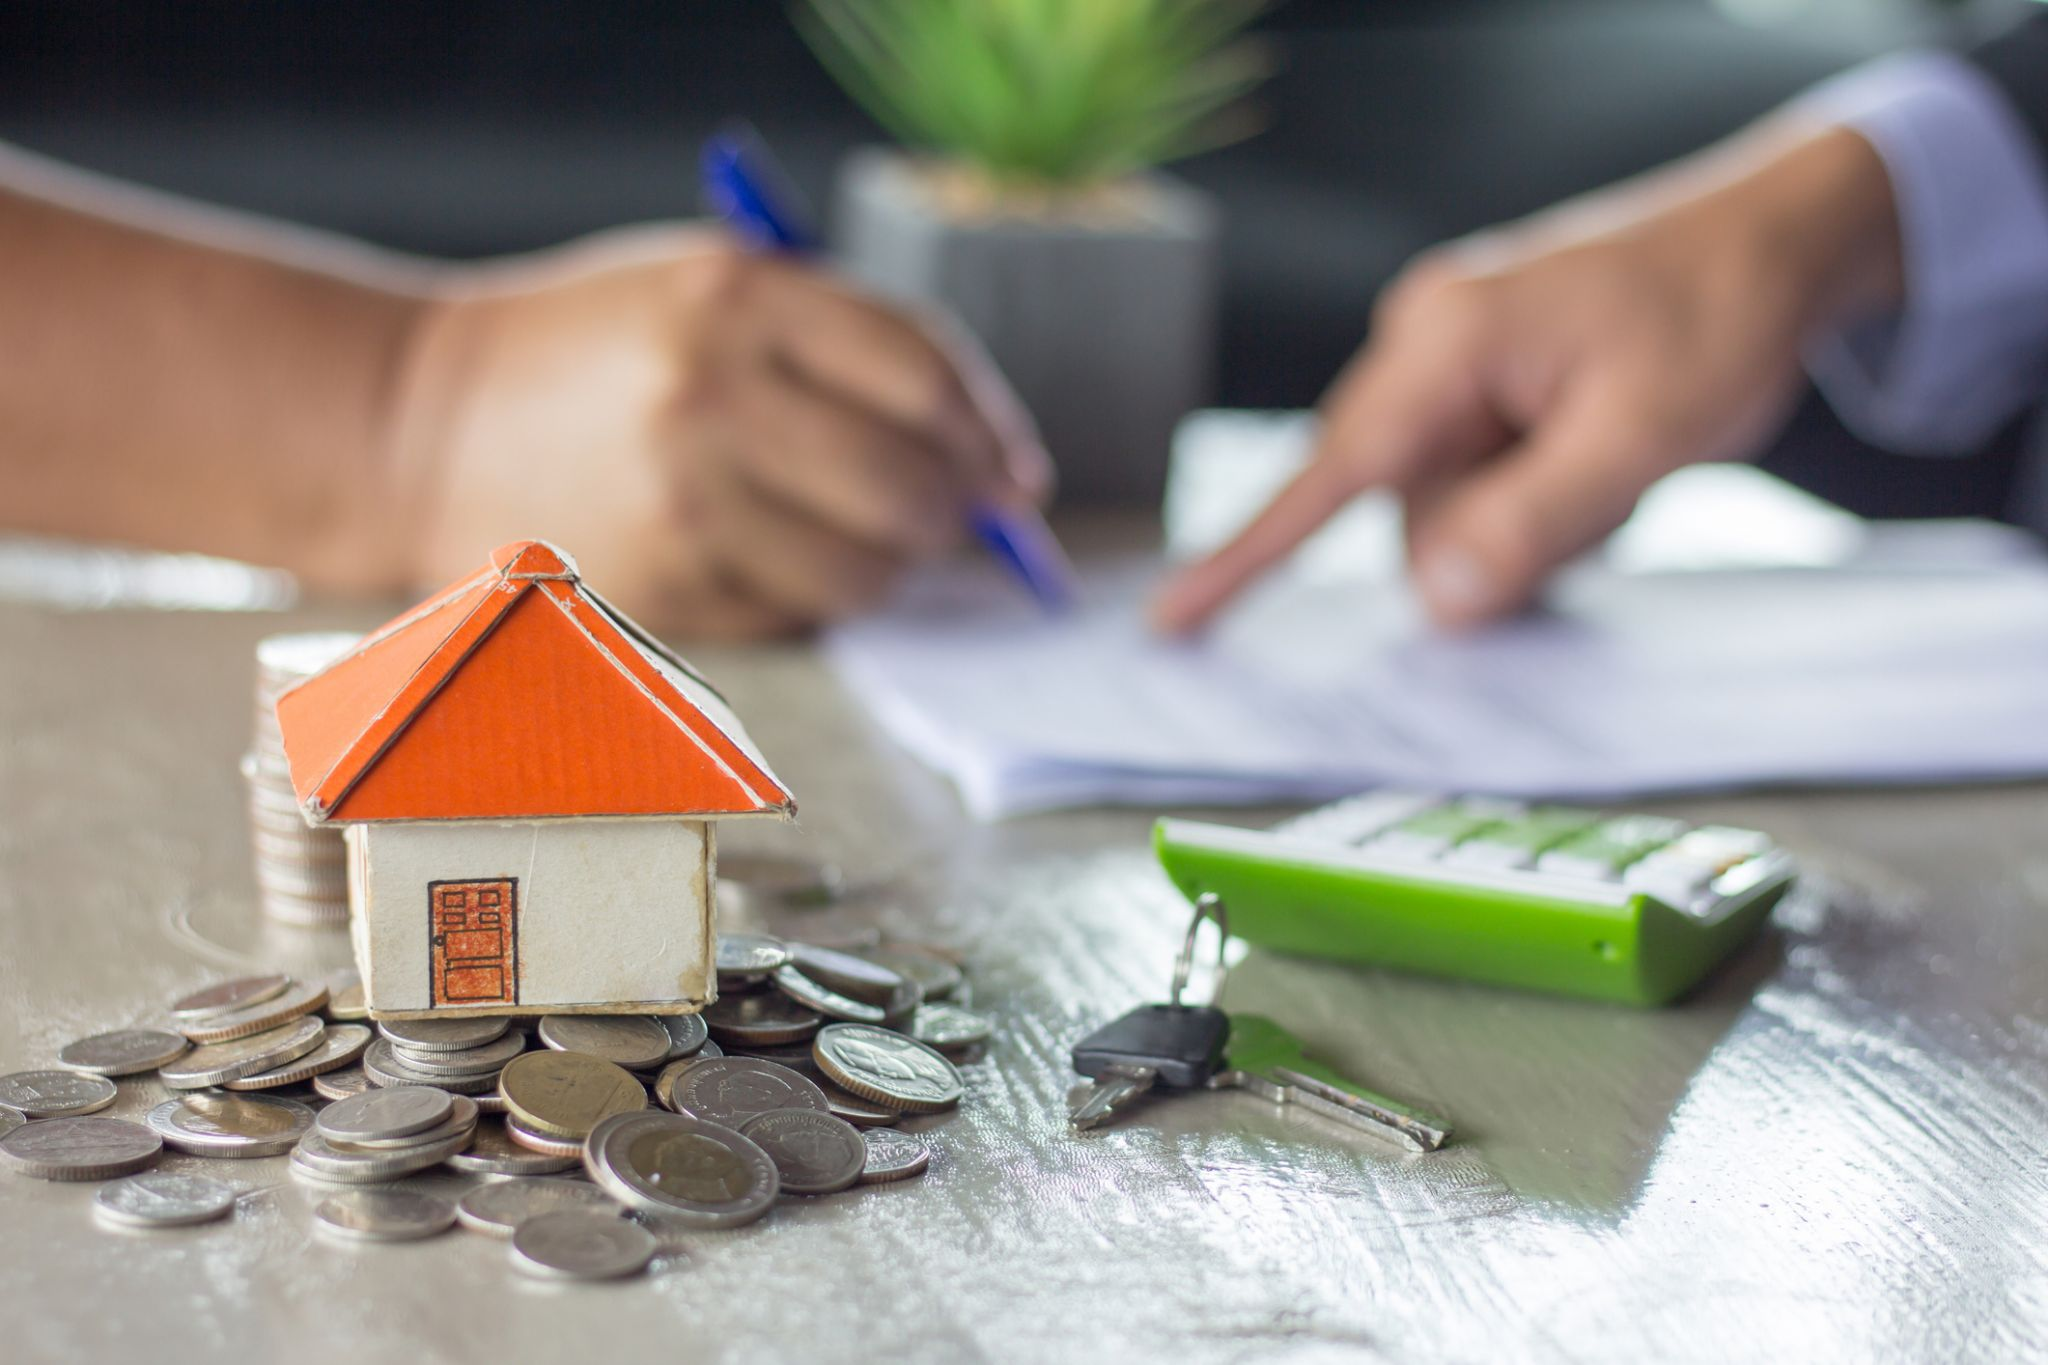 Selling your home? Here's what you need to know about pricing